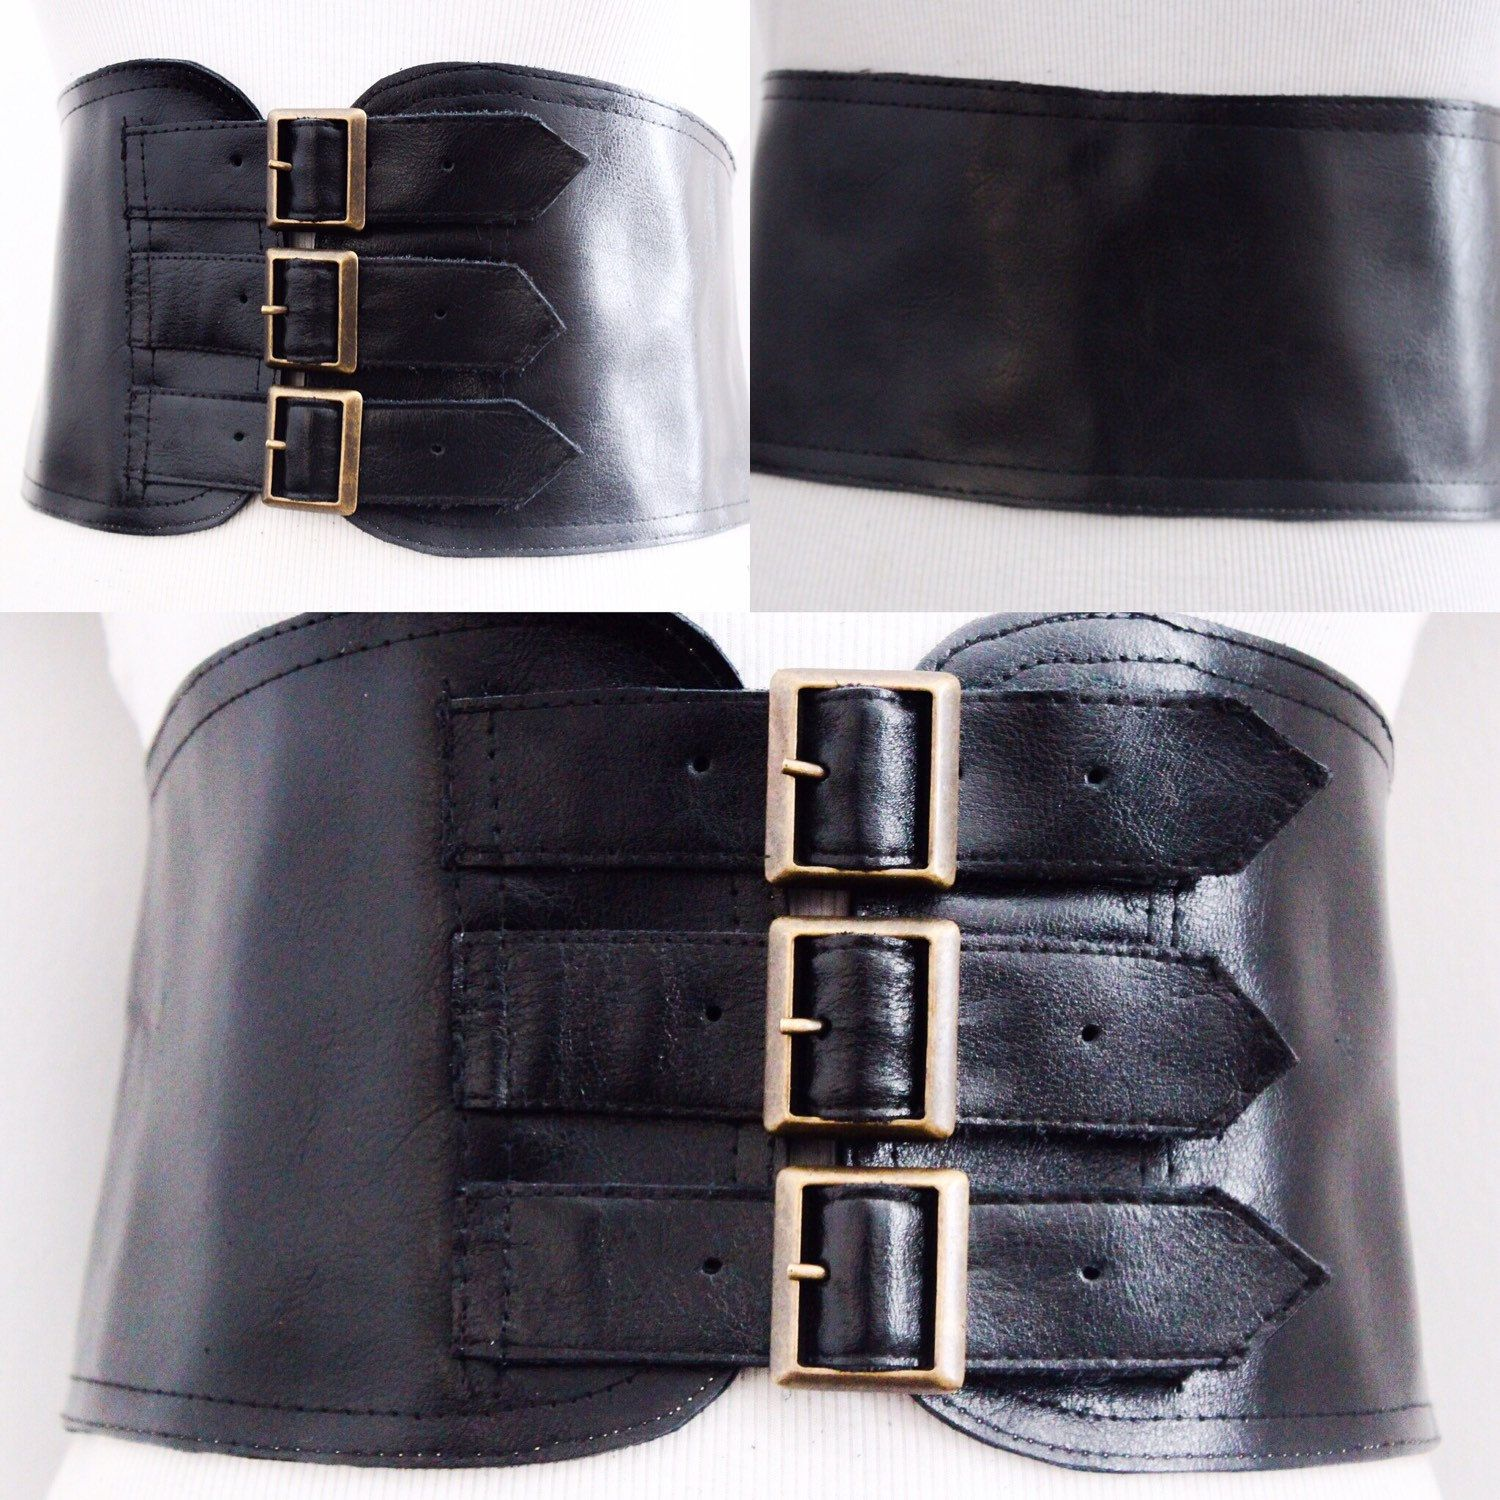 9661db71b6 NEW BELT ALERT! Black Wide Three Buckle Corset Belt available in all sizes  Any colour can be made into this belt CUSTOM ORDERS WELCOME!!! ...